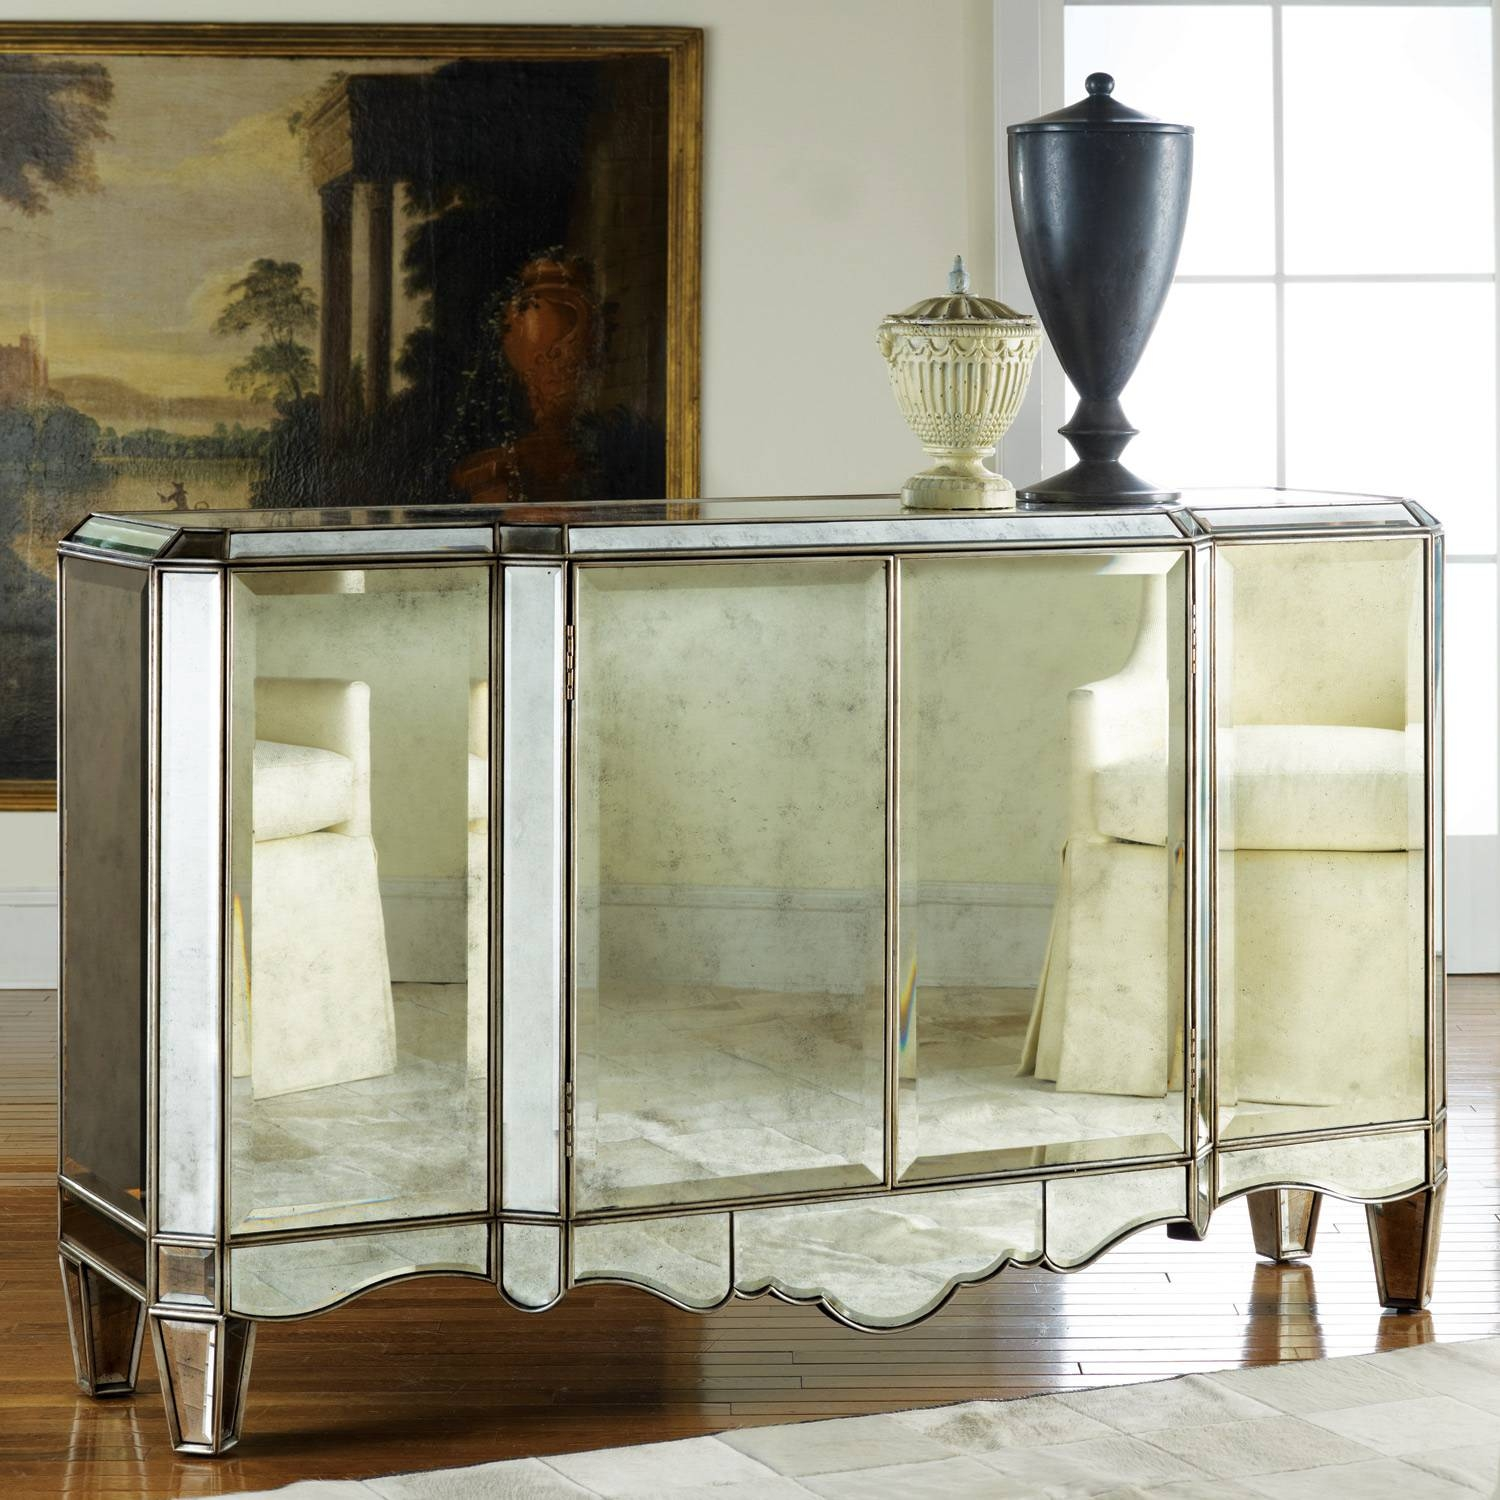 Modern History Home Mirrored Sideboard Pertaining To Mirrored Sideboard (View 16 of 20)